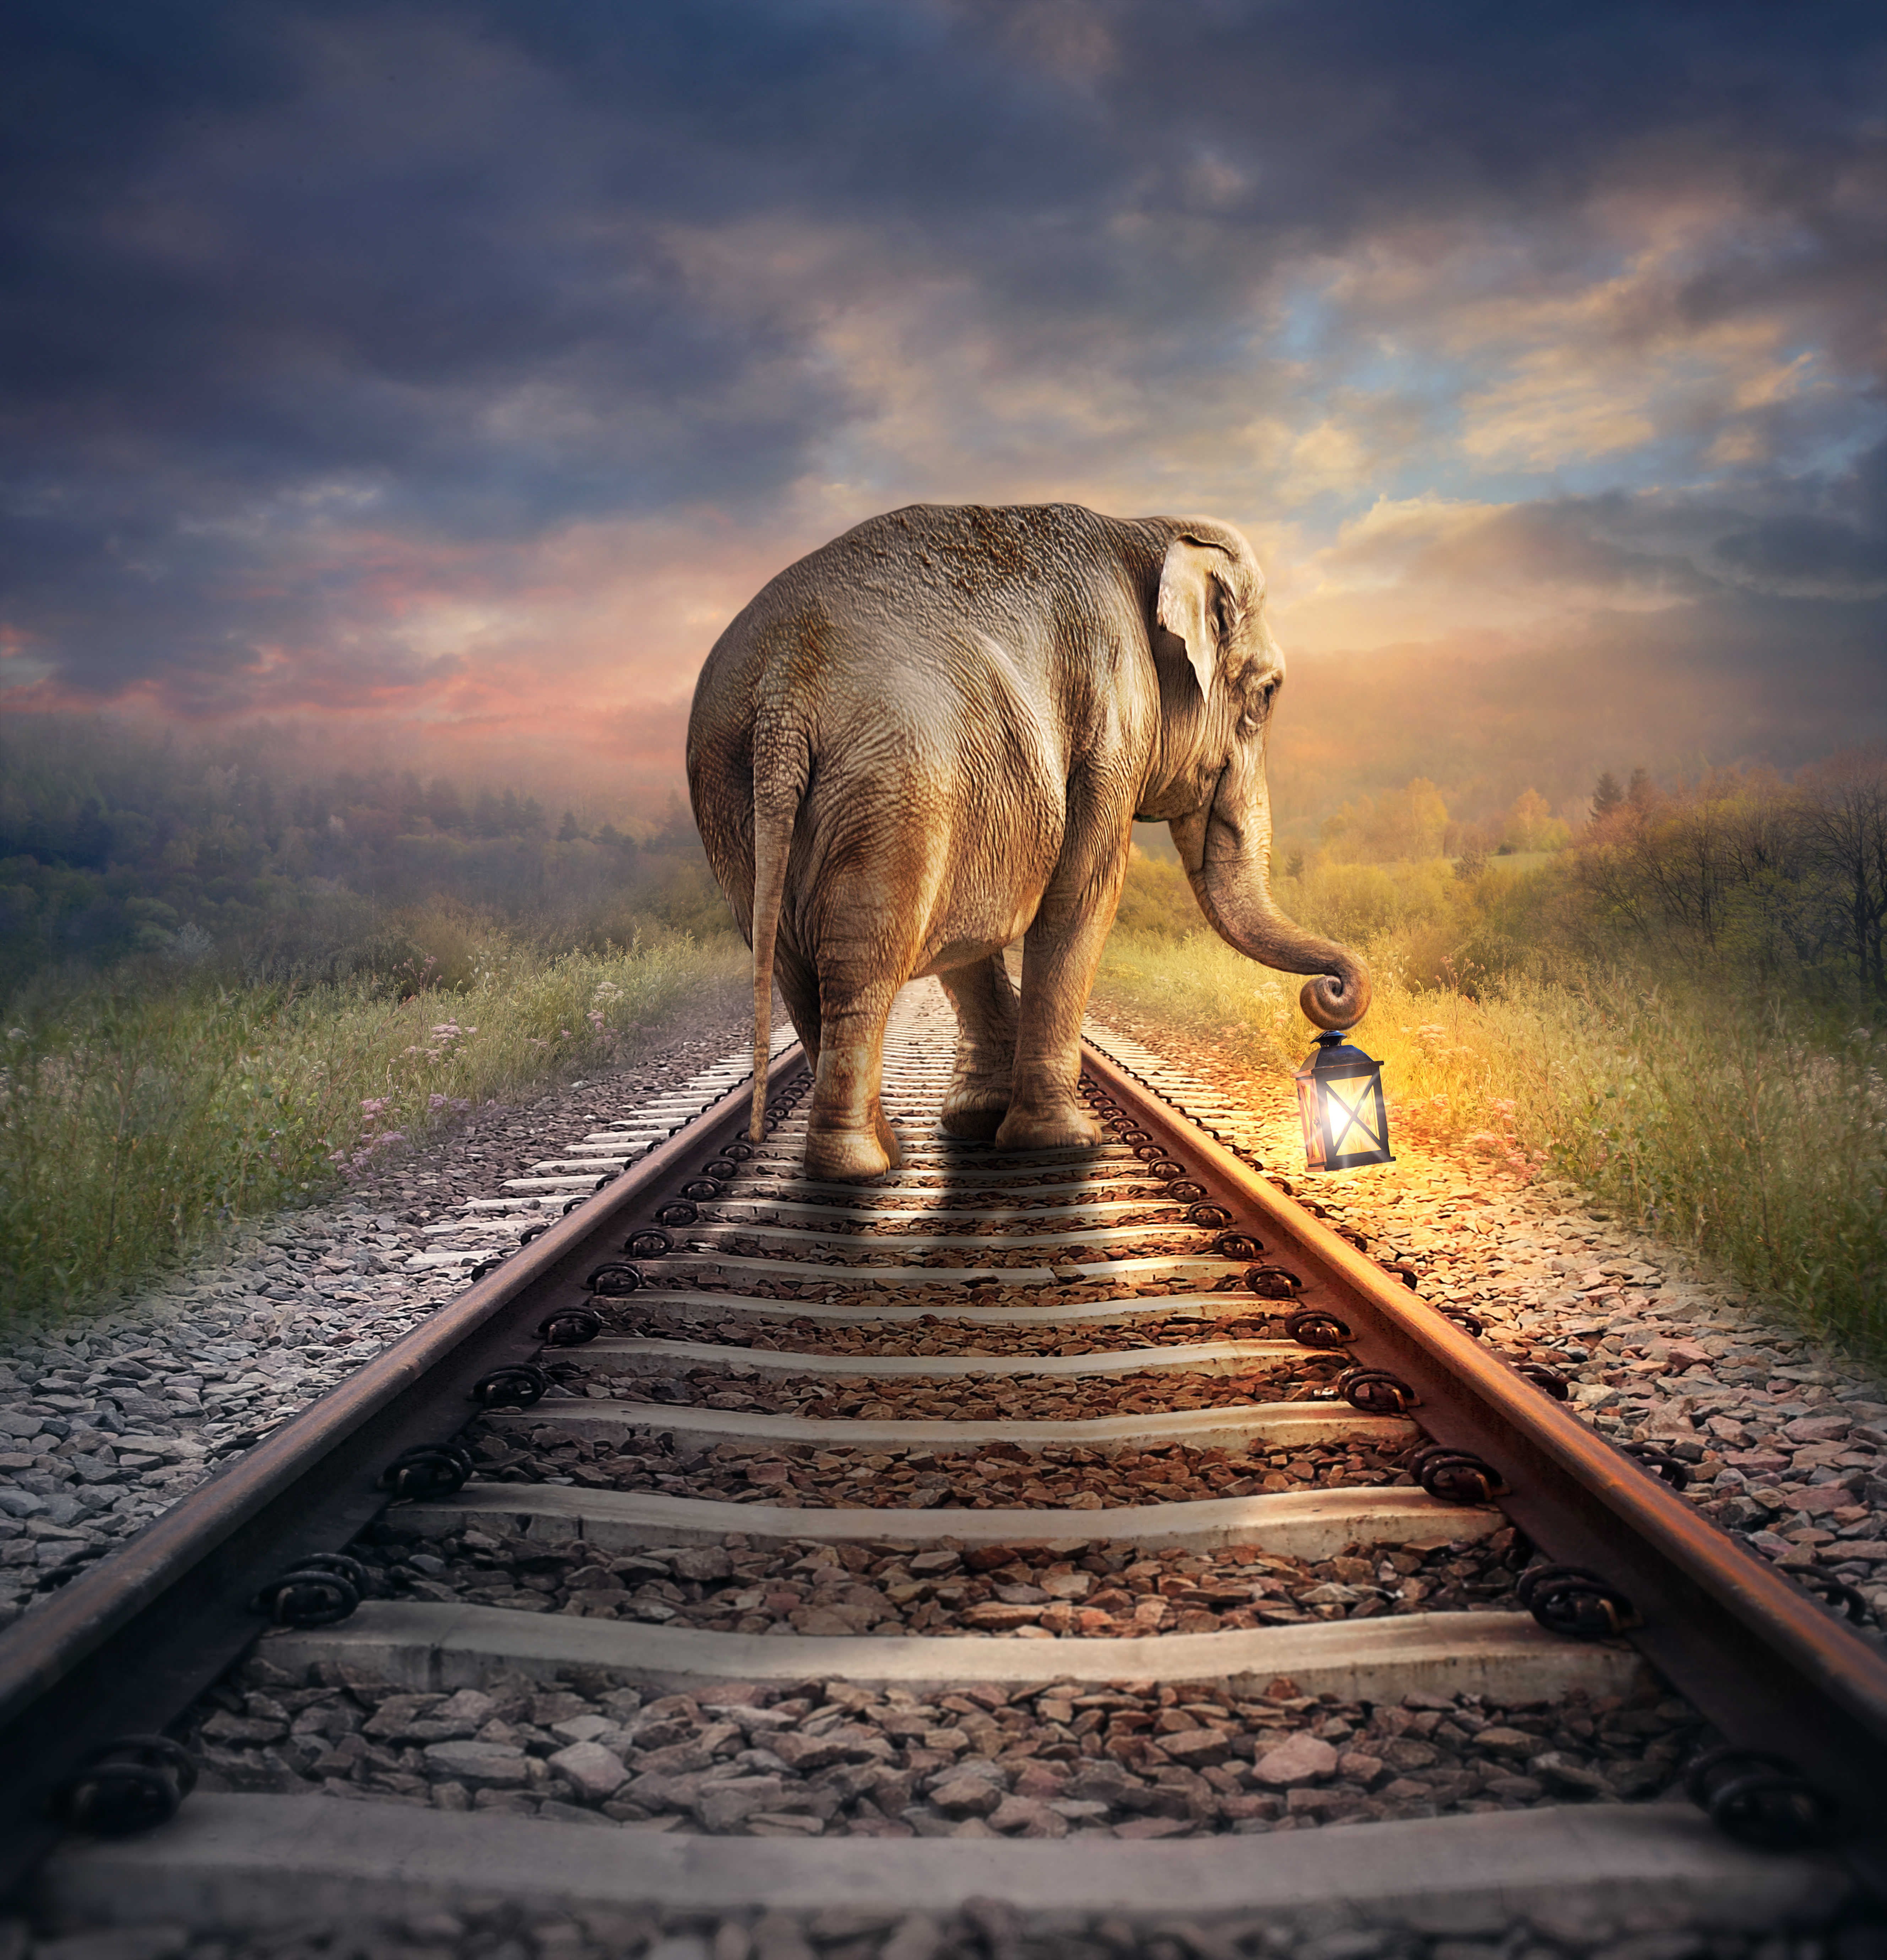 Petition: Protect Elephants in India From Being Struck by Trains